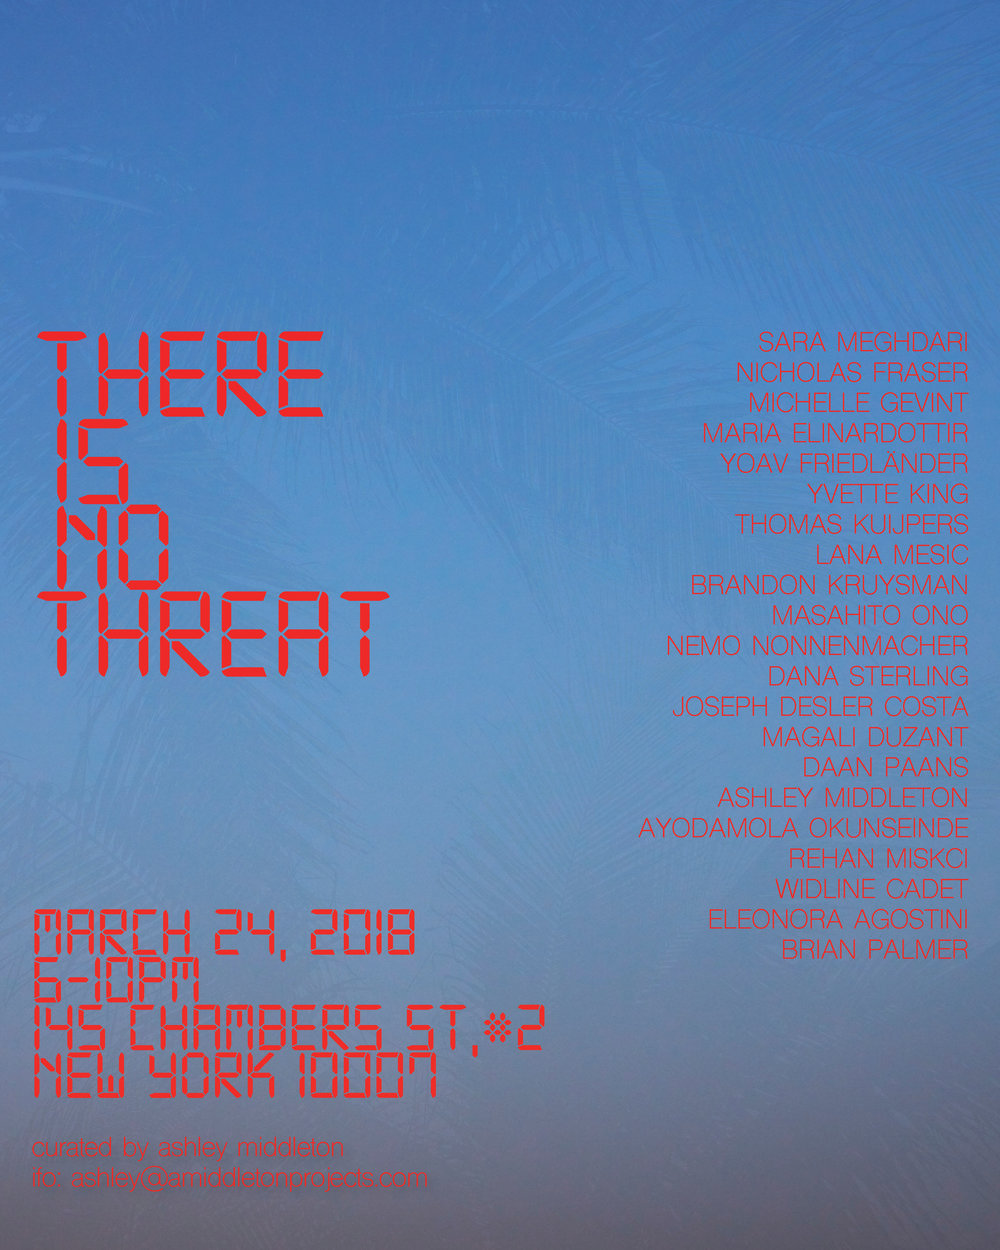 ThereIsNoThreat_Poster.jpg